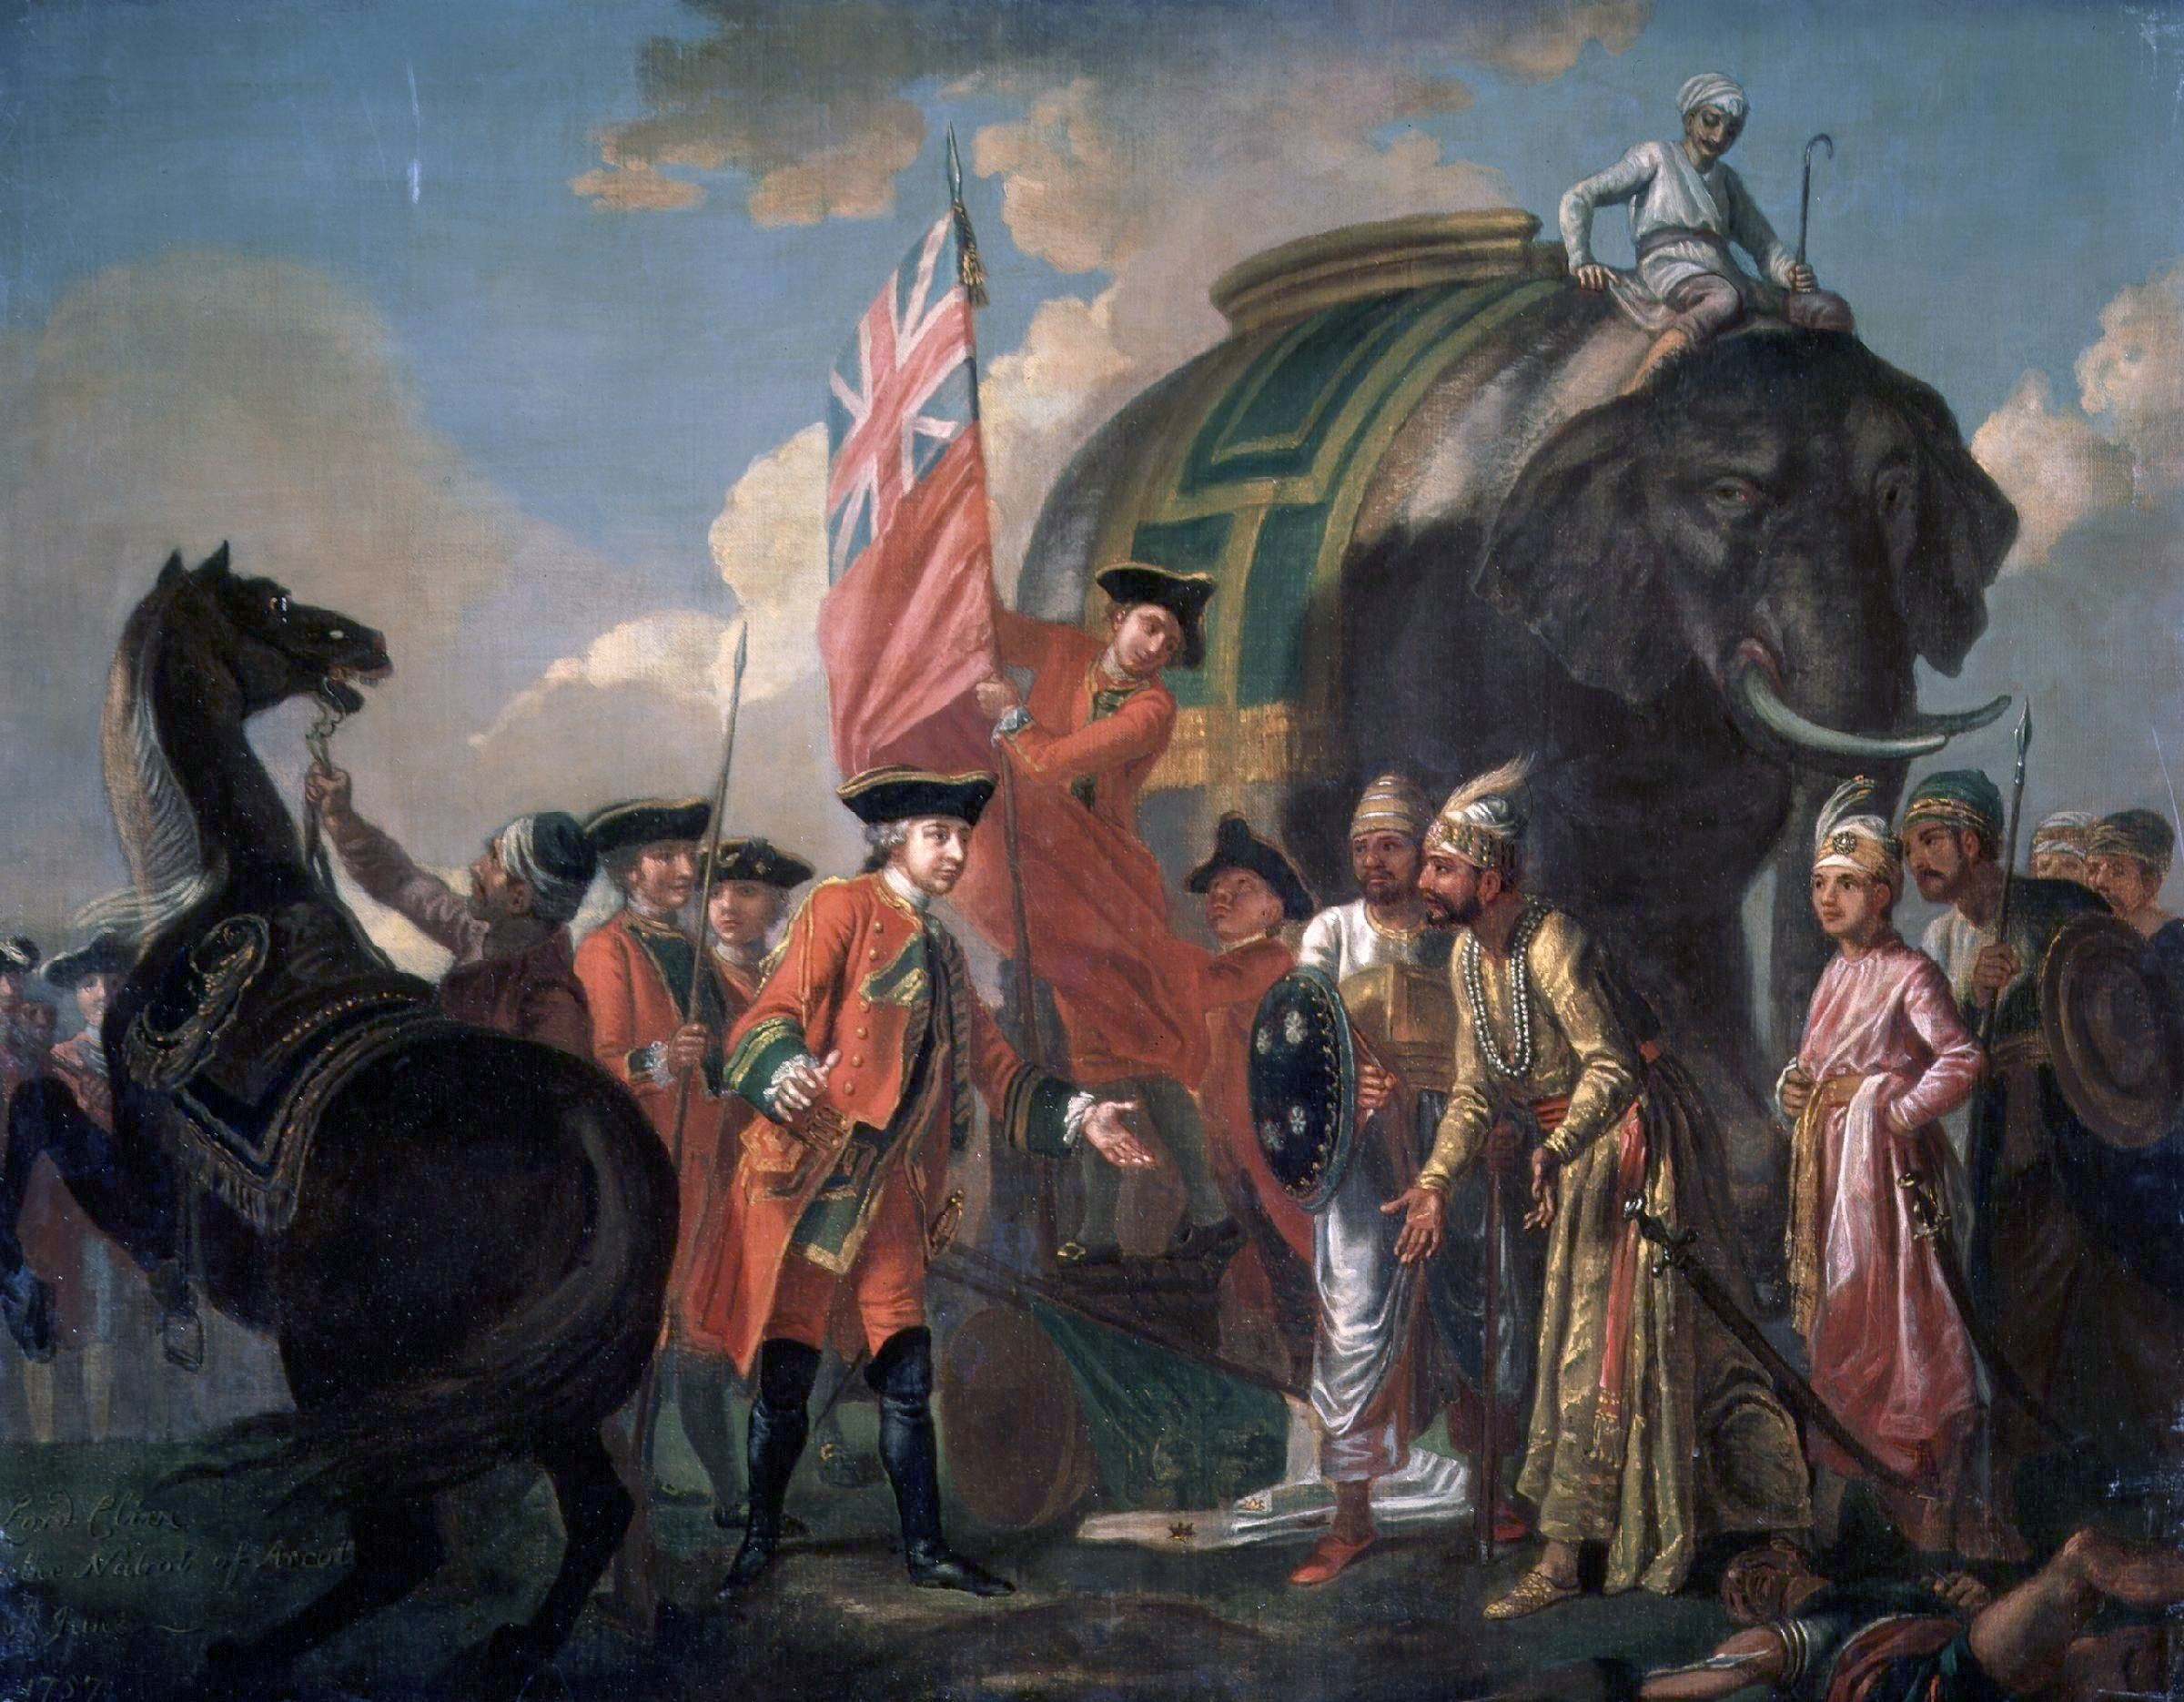 compare and contrast of the effects of imperialism of the west on robert clive 1st baron clive of plassey meeting mir jafar after plassey